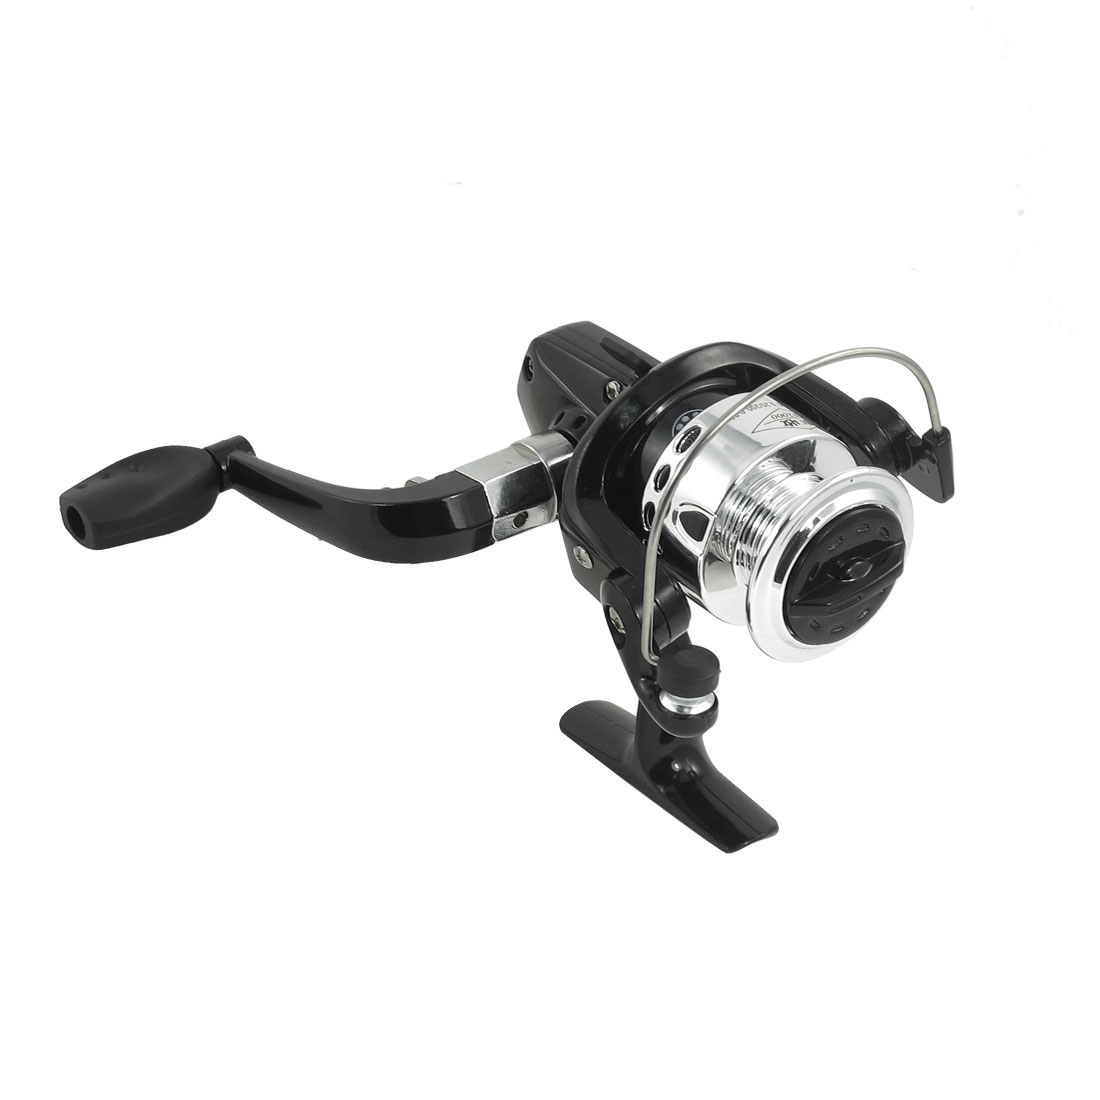 Silver Tone Black Fishing 3 Ball Bearing Gear Ratio 5.2:1 Spinning Reel